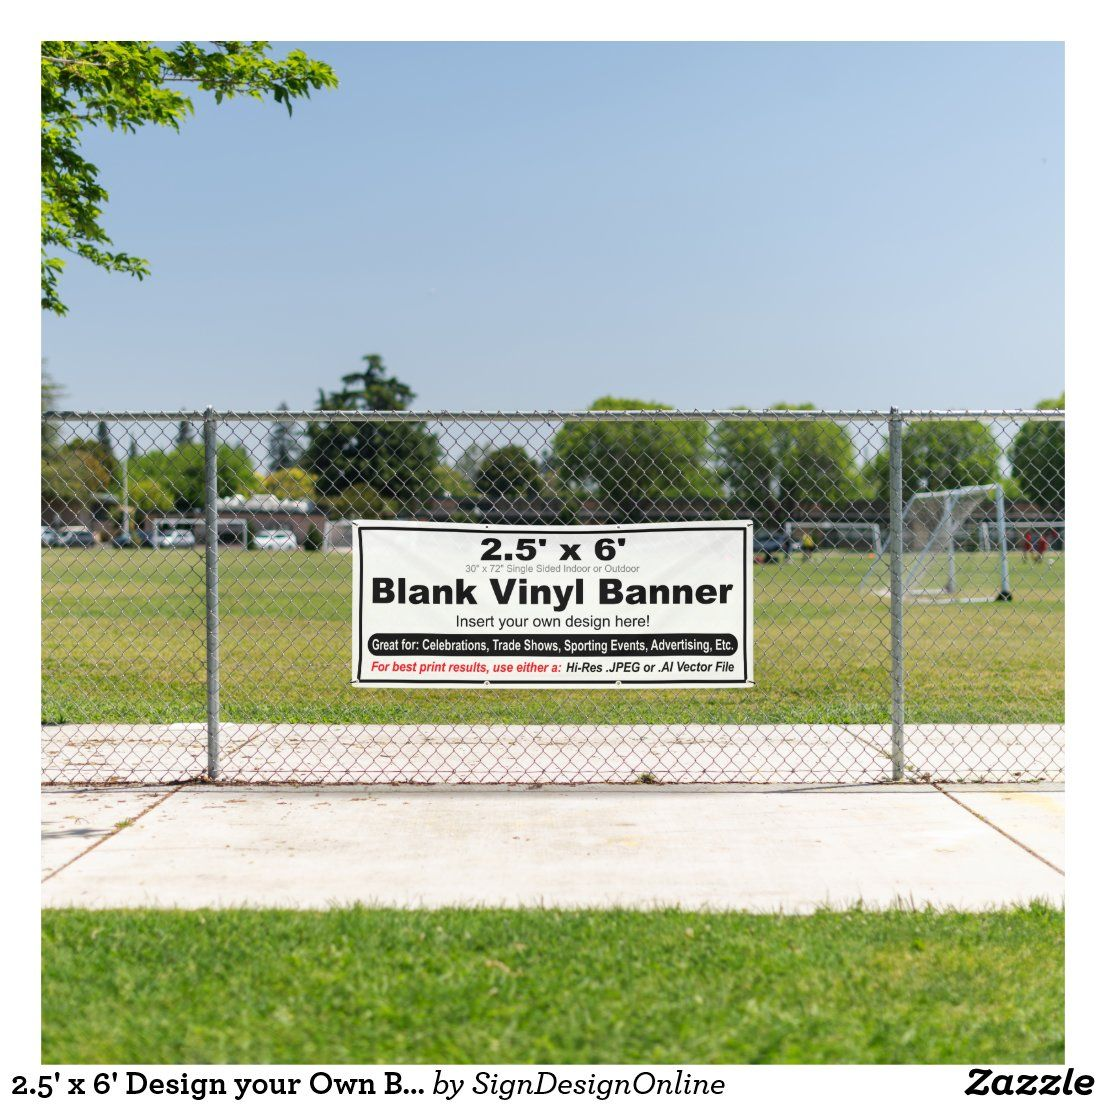 2 5 X 6 Design Your Own Banner Zazzle Com In 2020 Outdoor Banners Welcome Back Banner Custom Vinyl Banners